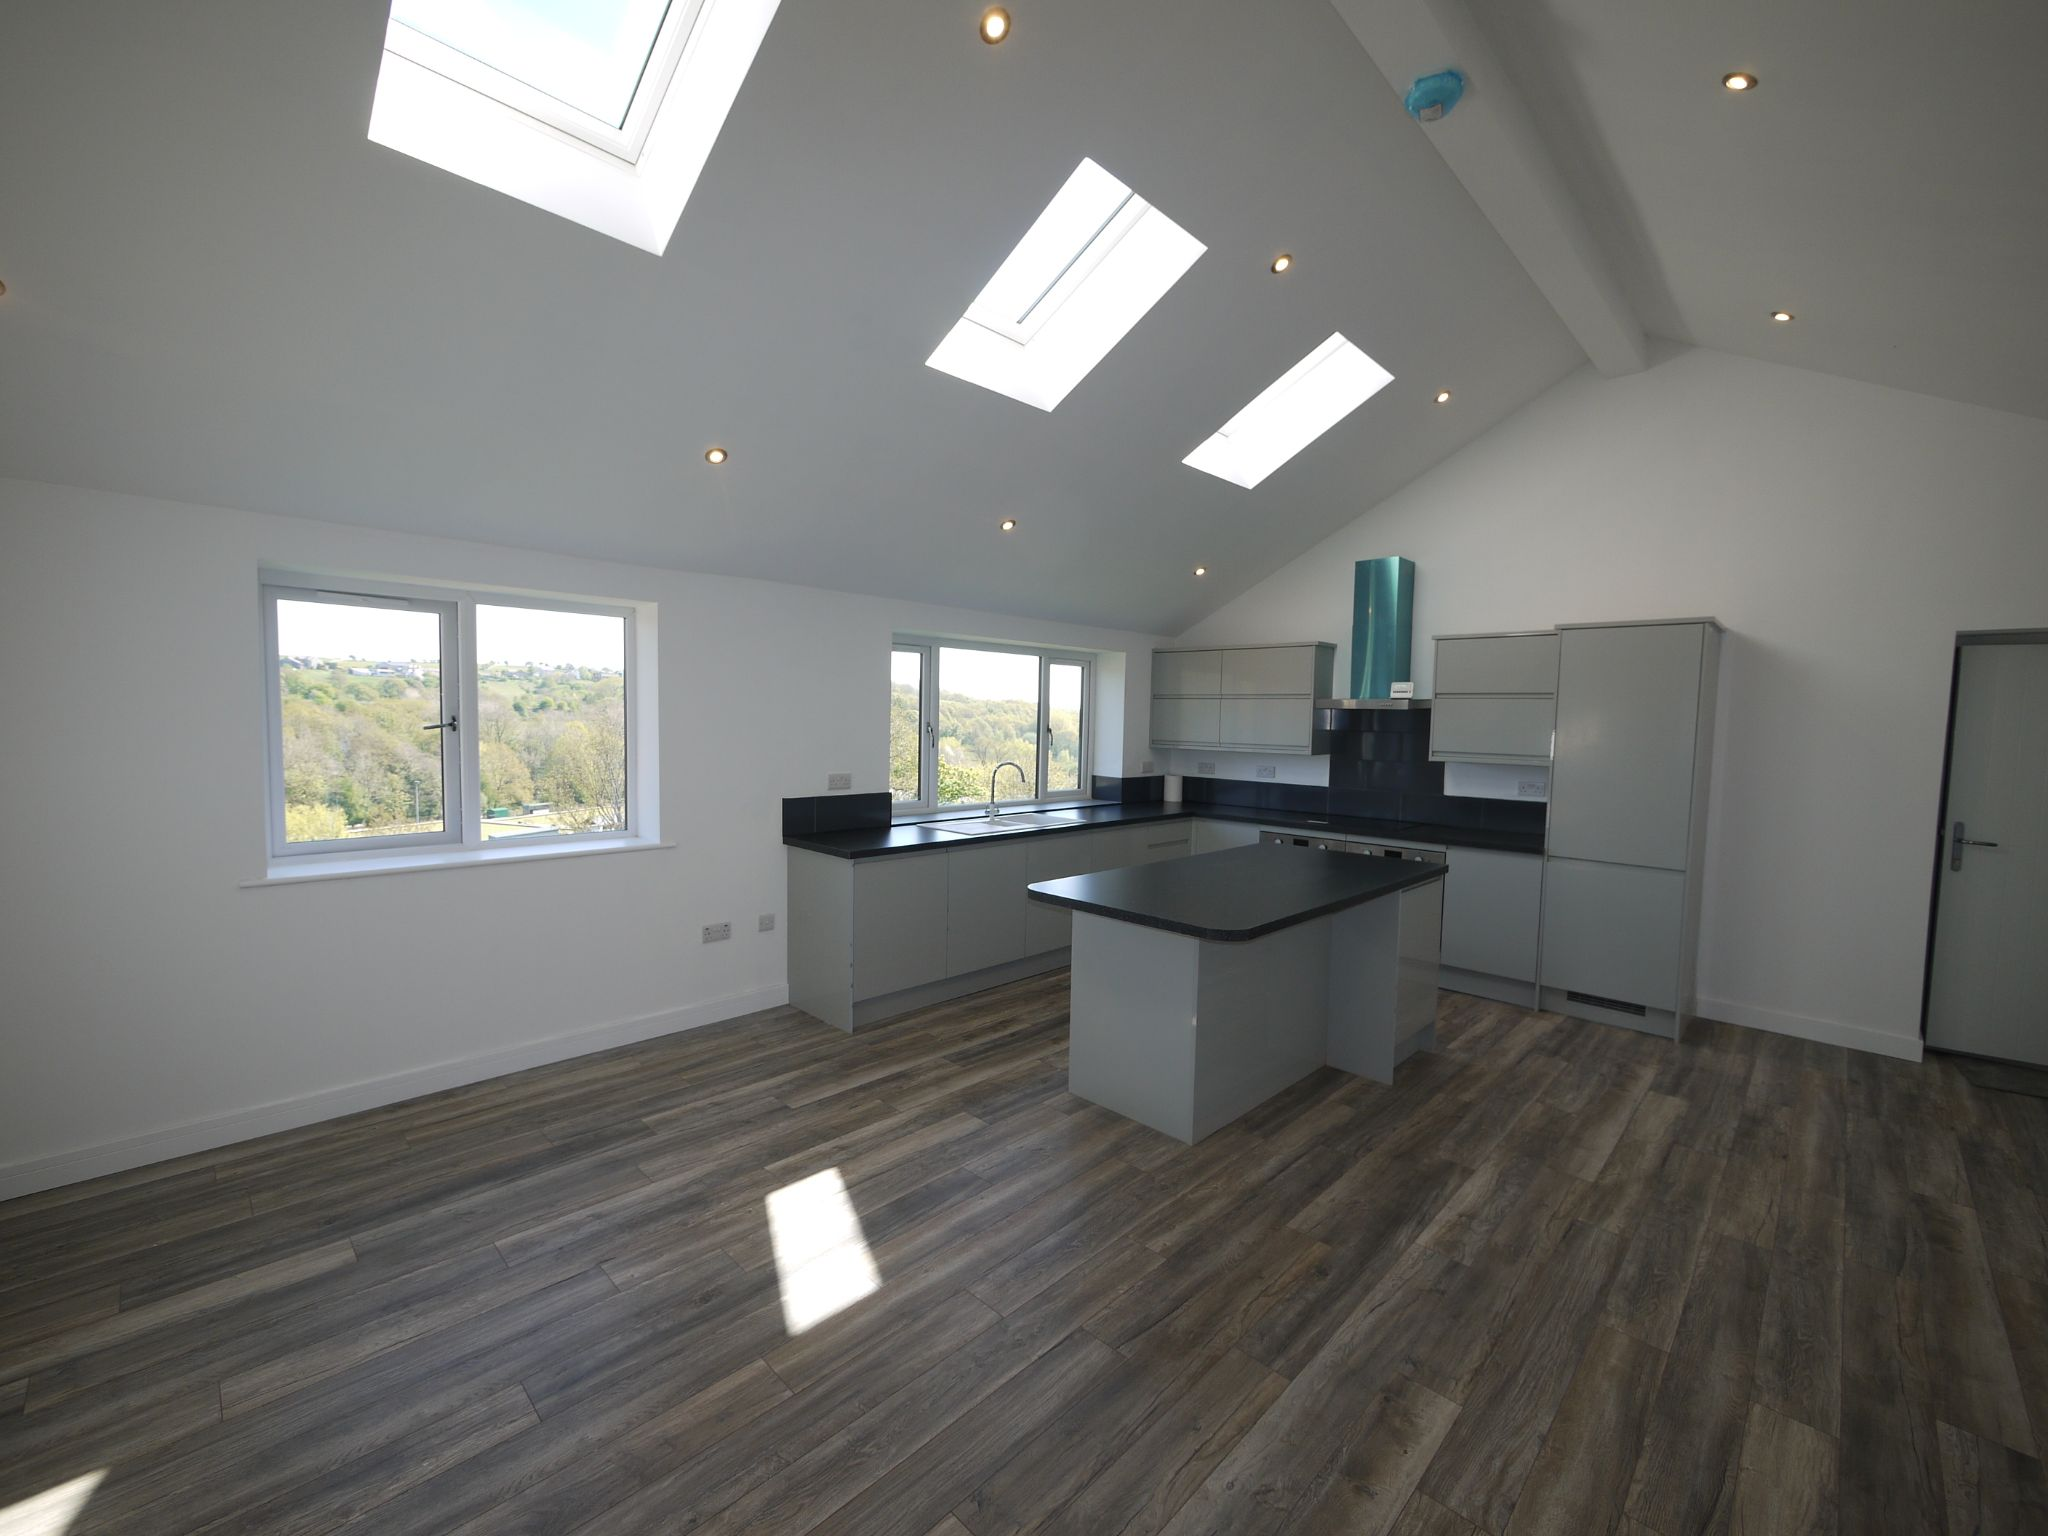 3 bedroom detached house For Sale in Brighouse - Dining Kit 1.